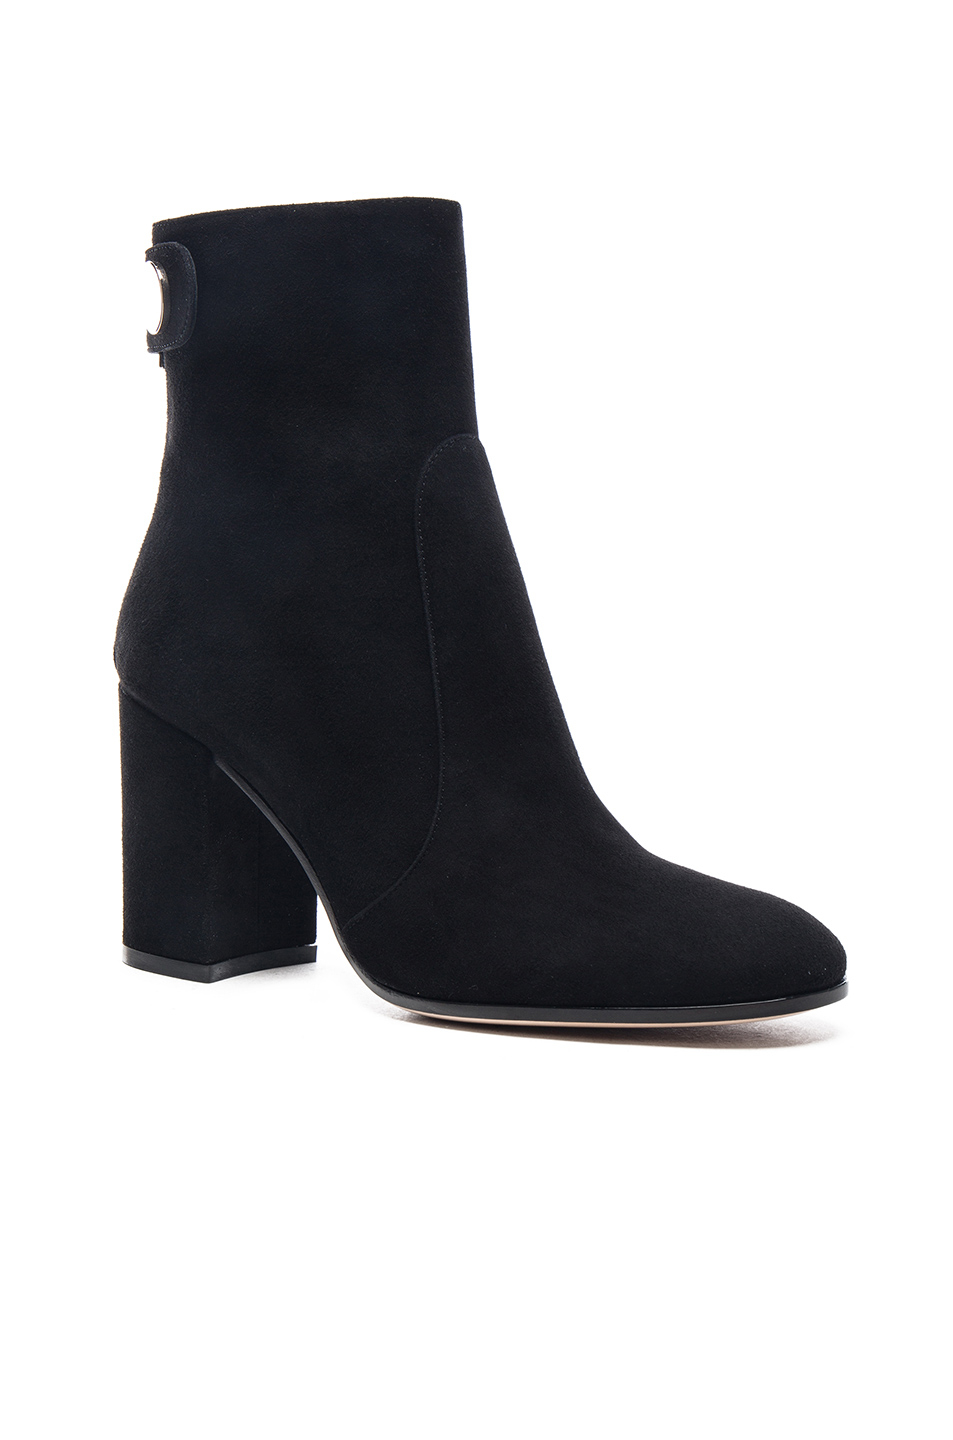 Gianvito rossi Suede Chunky Heel Boots in Black | Lyst